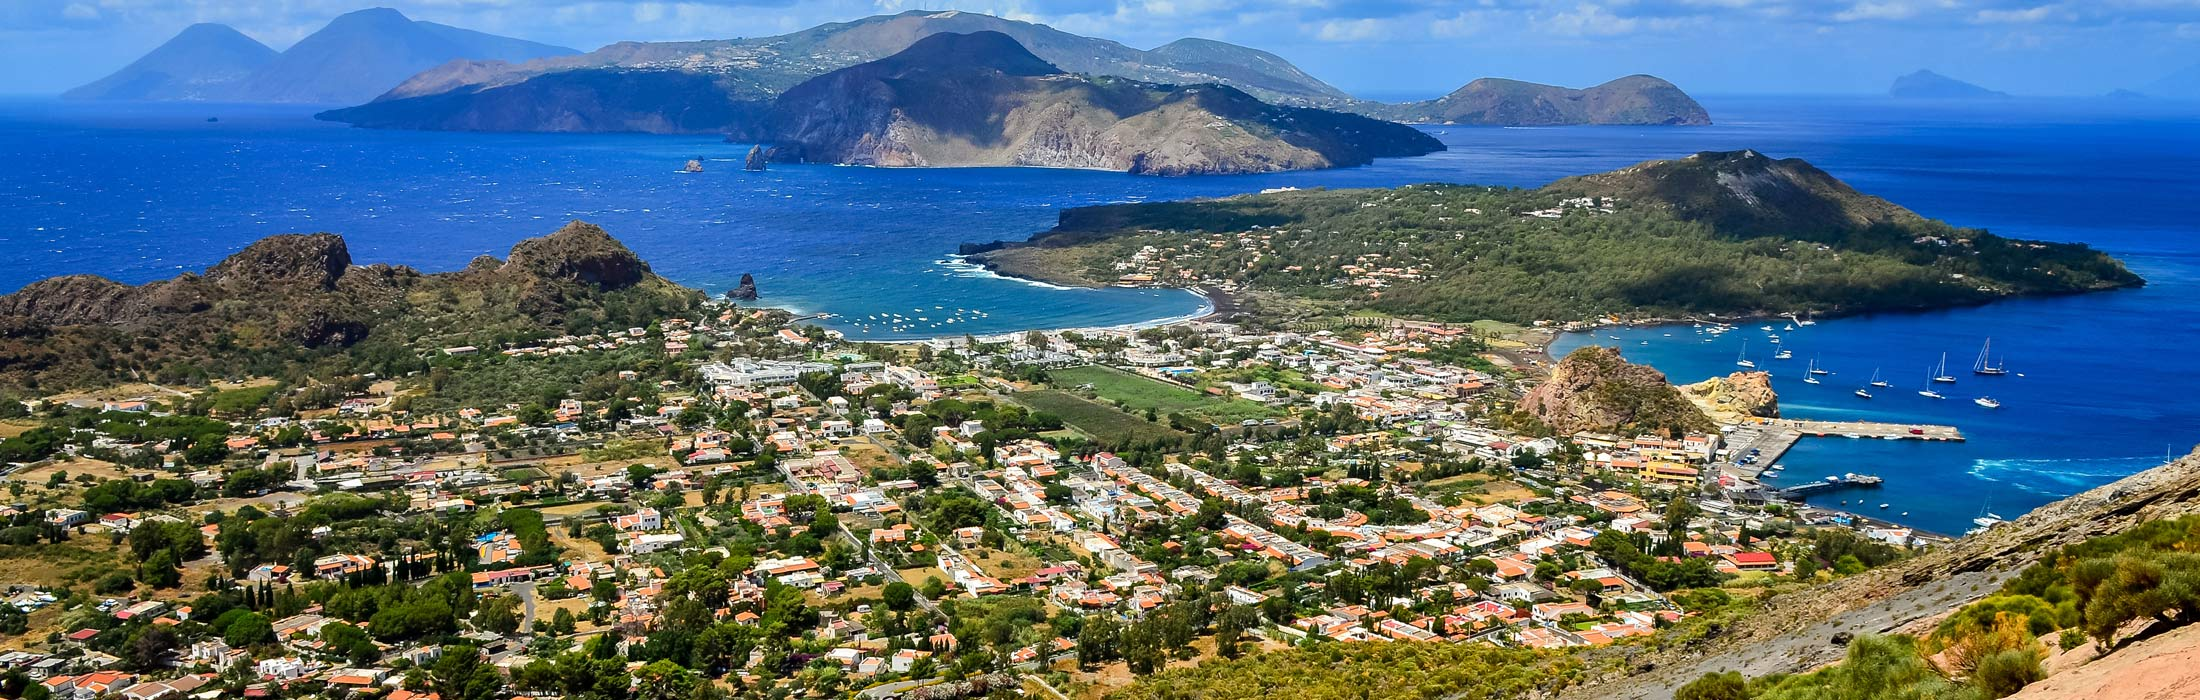 top yacht charter destinations mediterranean sicily and lipari islands lipari and the other aeolian islands main slider 1